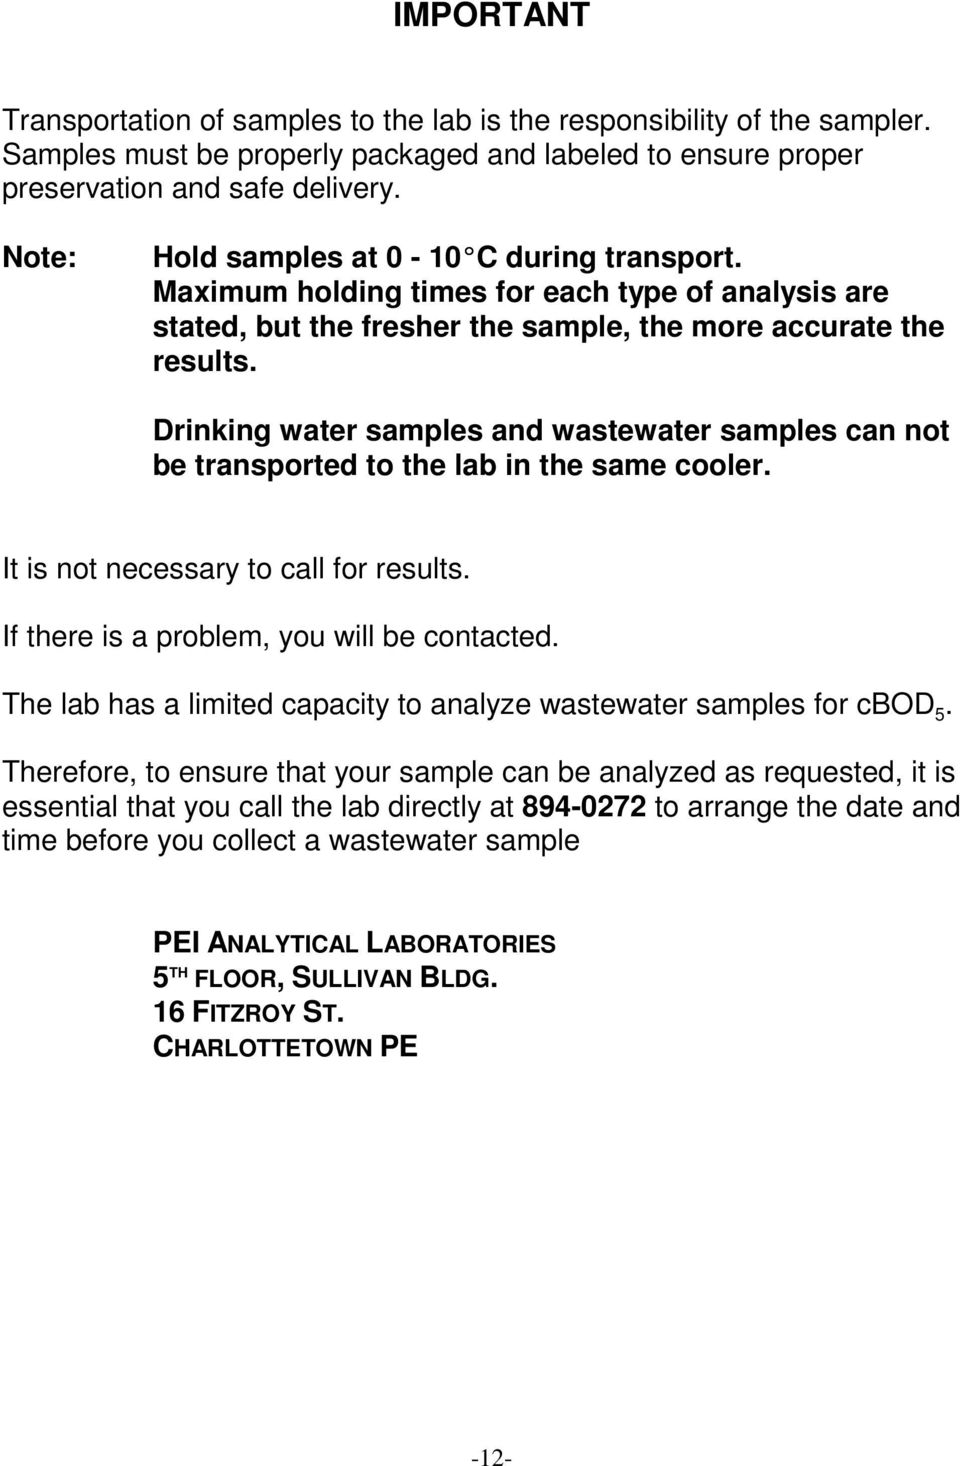 Drinking water samples and wastewater samples can not be transported to the lab in the same cooler. It is not necessary to call for results. If there is a problem, you will be contacted.